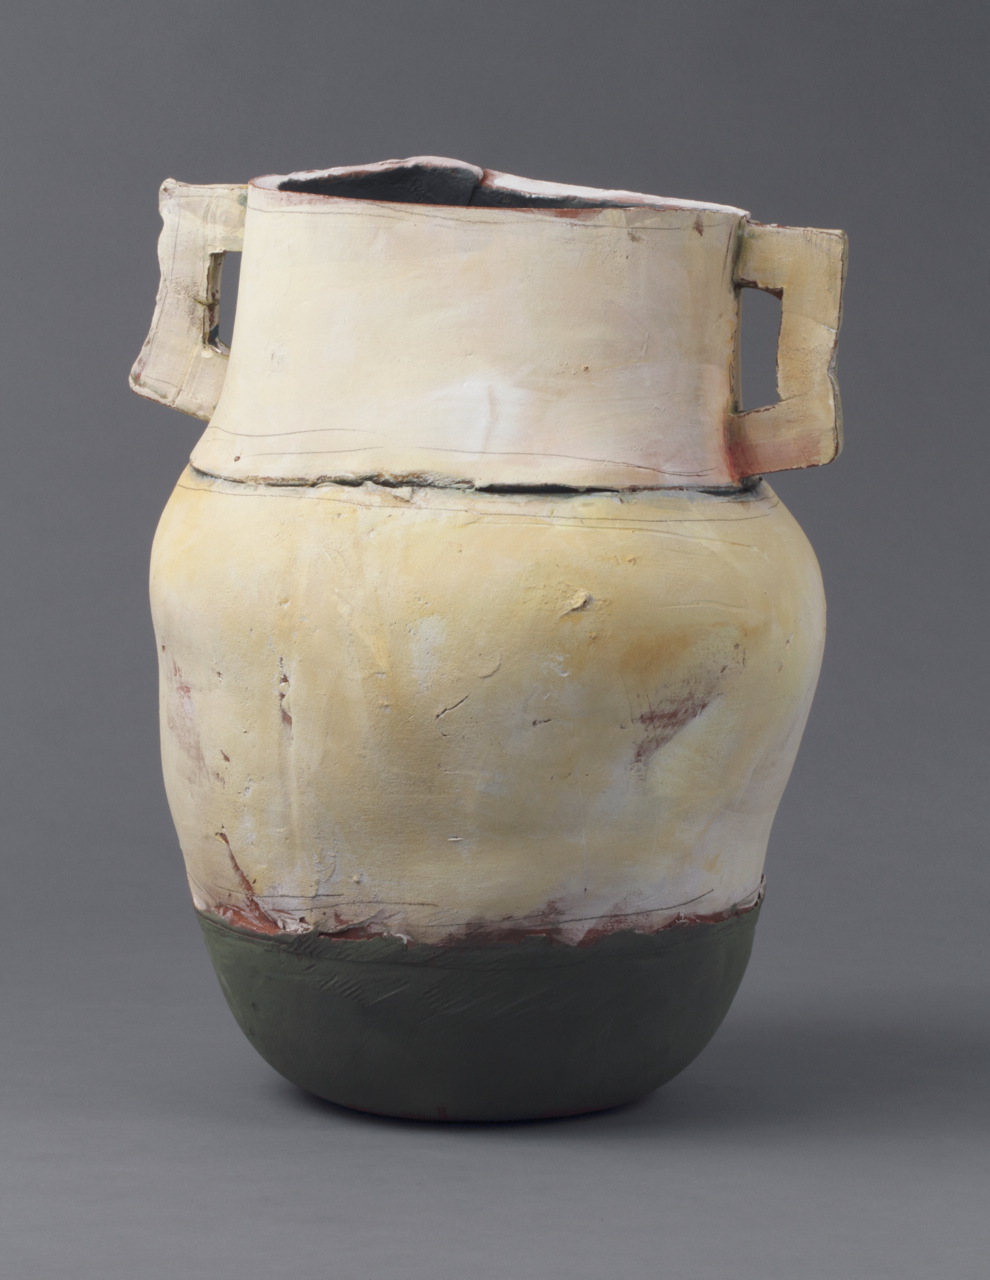 Large Pot with Green Base, 2012